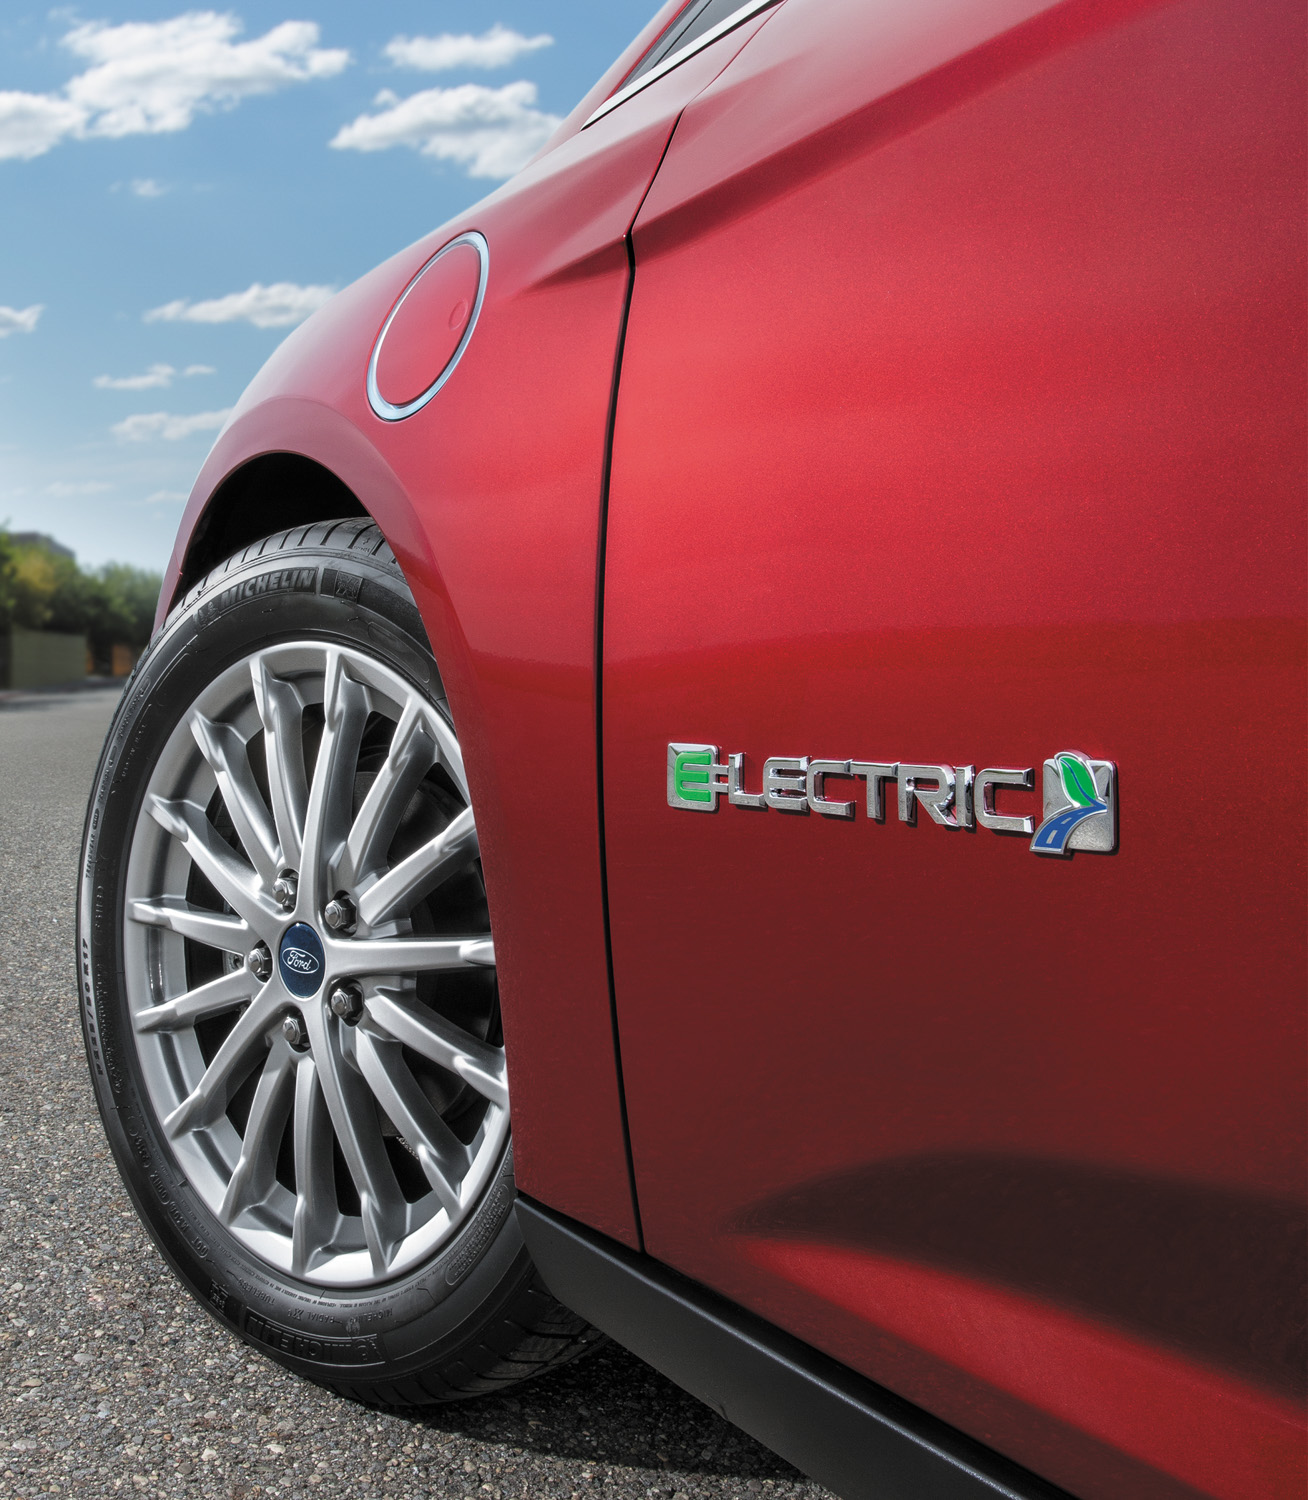 2017 Ford Focus Electric badge